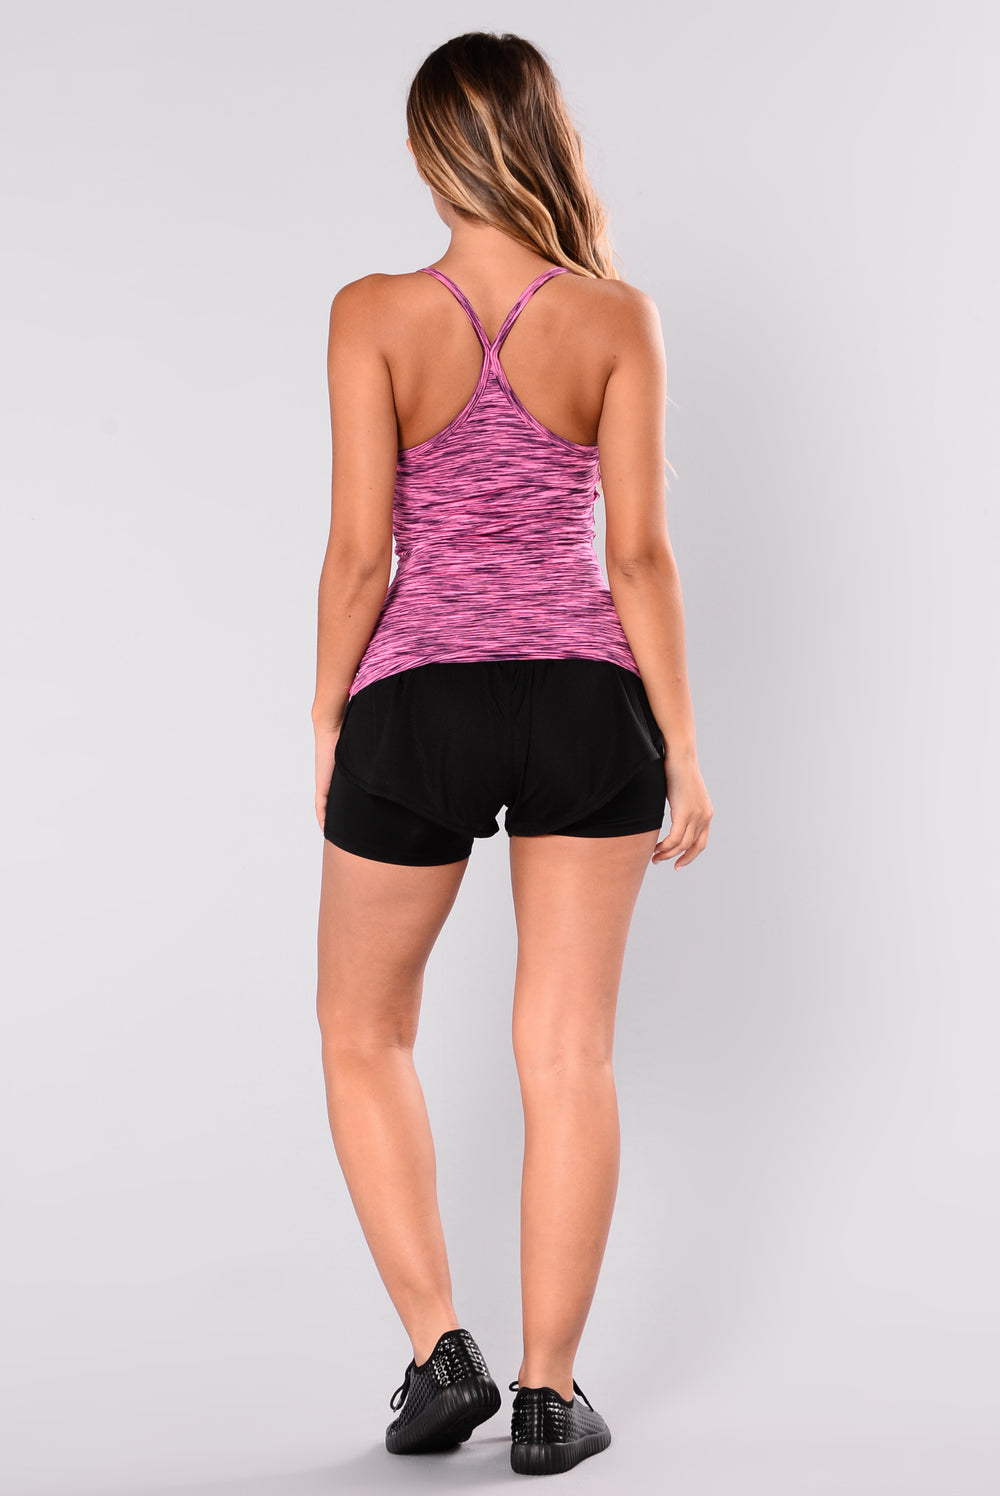 Trendster Active Tank Top - Fuchsia/Black